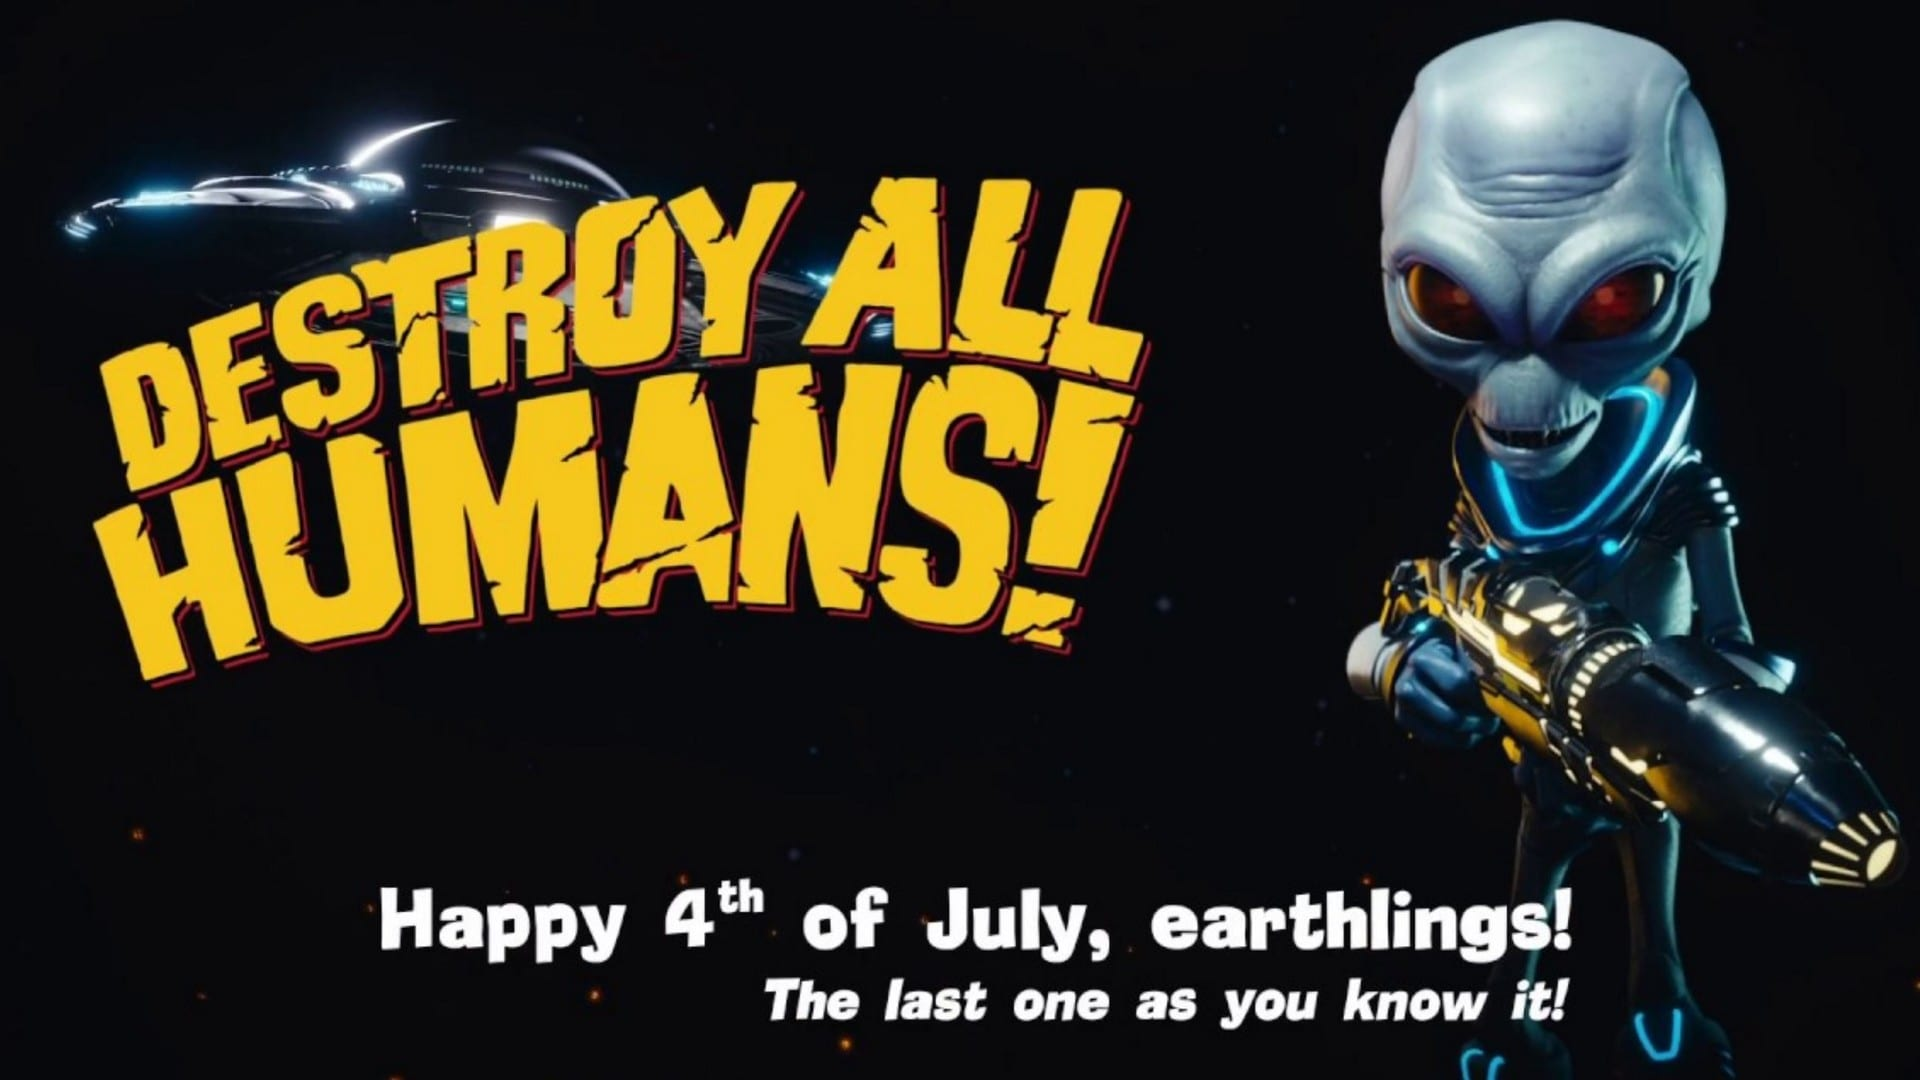 Happy 4th Of July From The Furon Empire: New Destroy All Humans